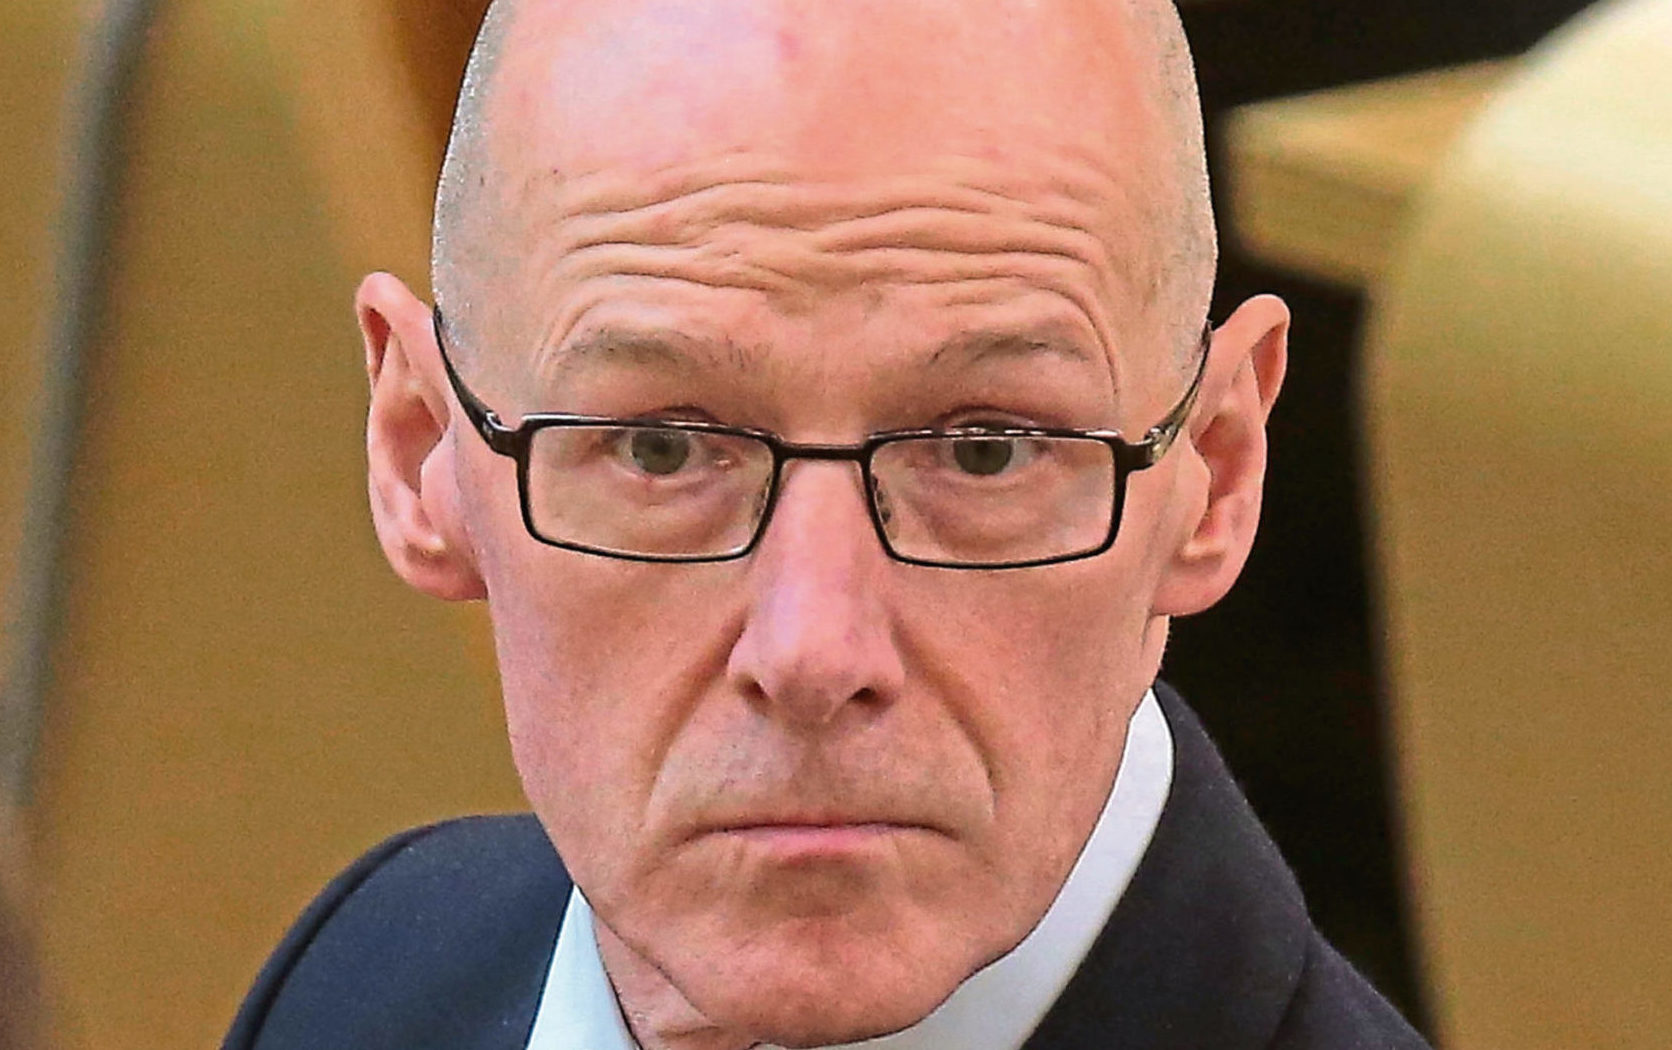 John Swinney MSP Deputy First Minister and Education Secretary during Topical Questions